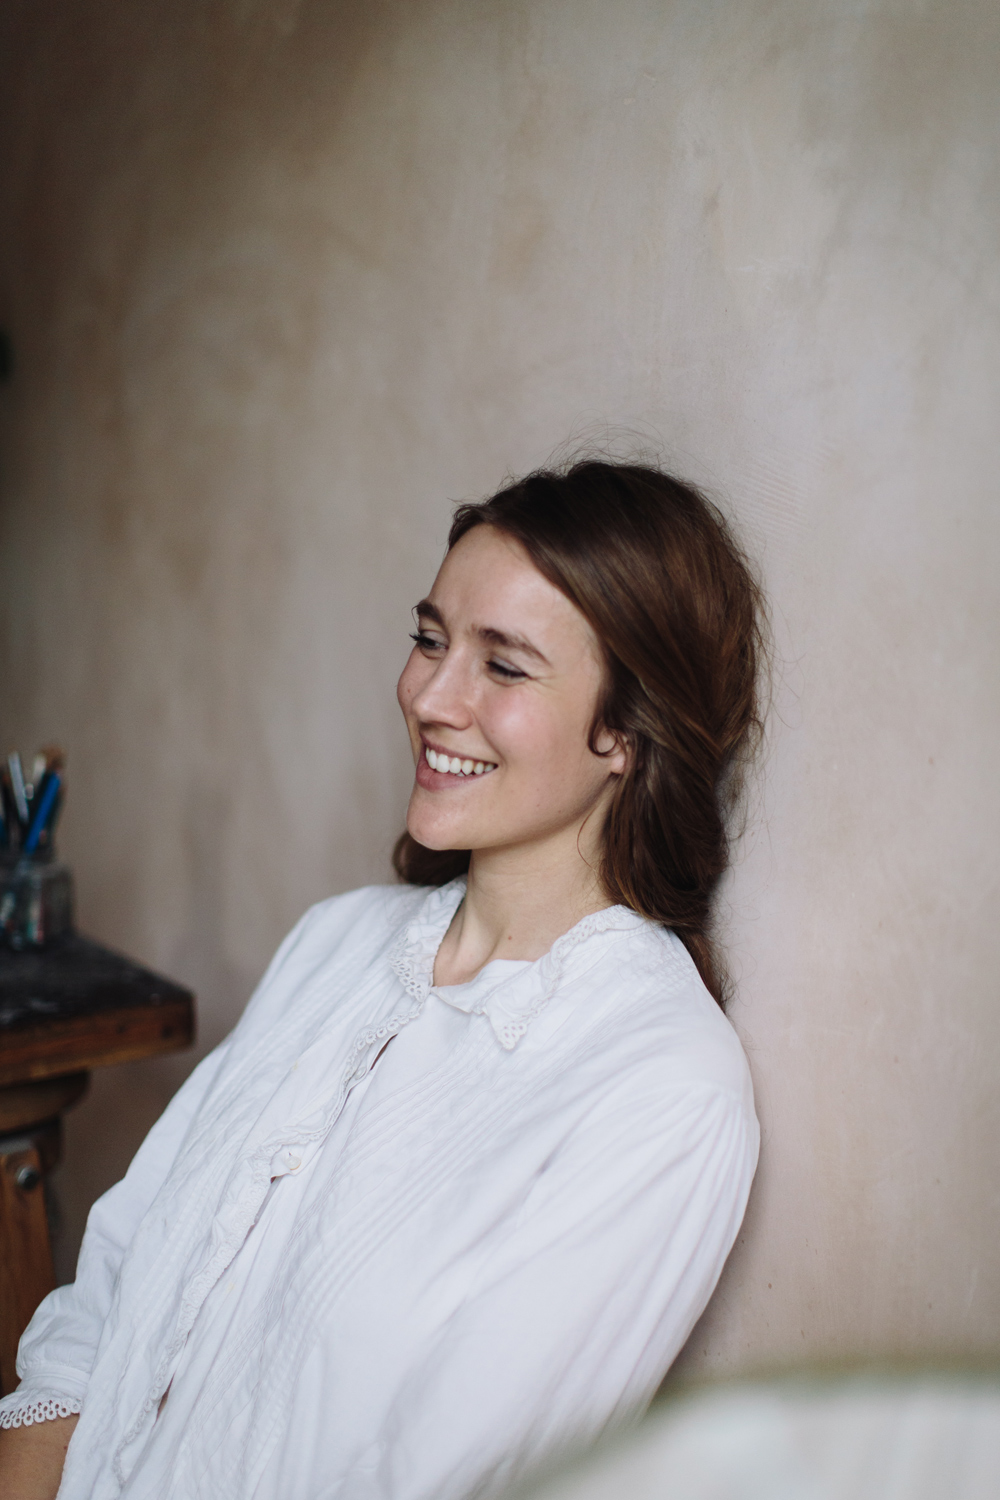 Tess Newall - set designer of Vita & Virginia